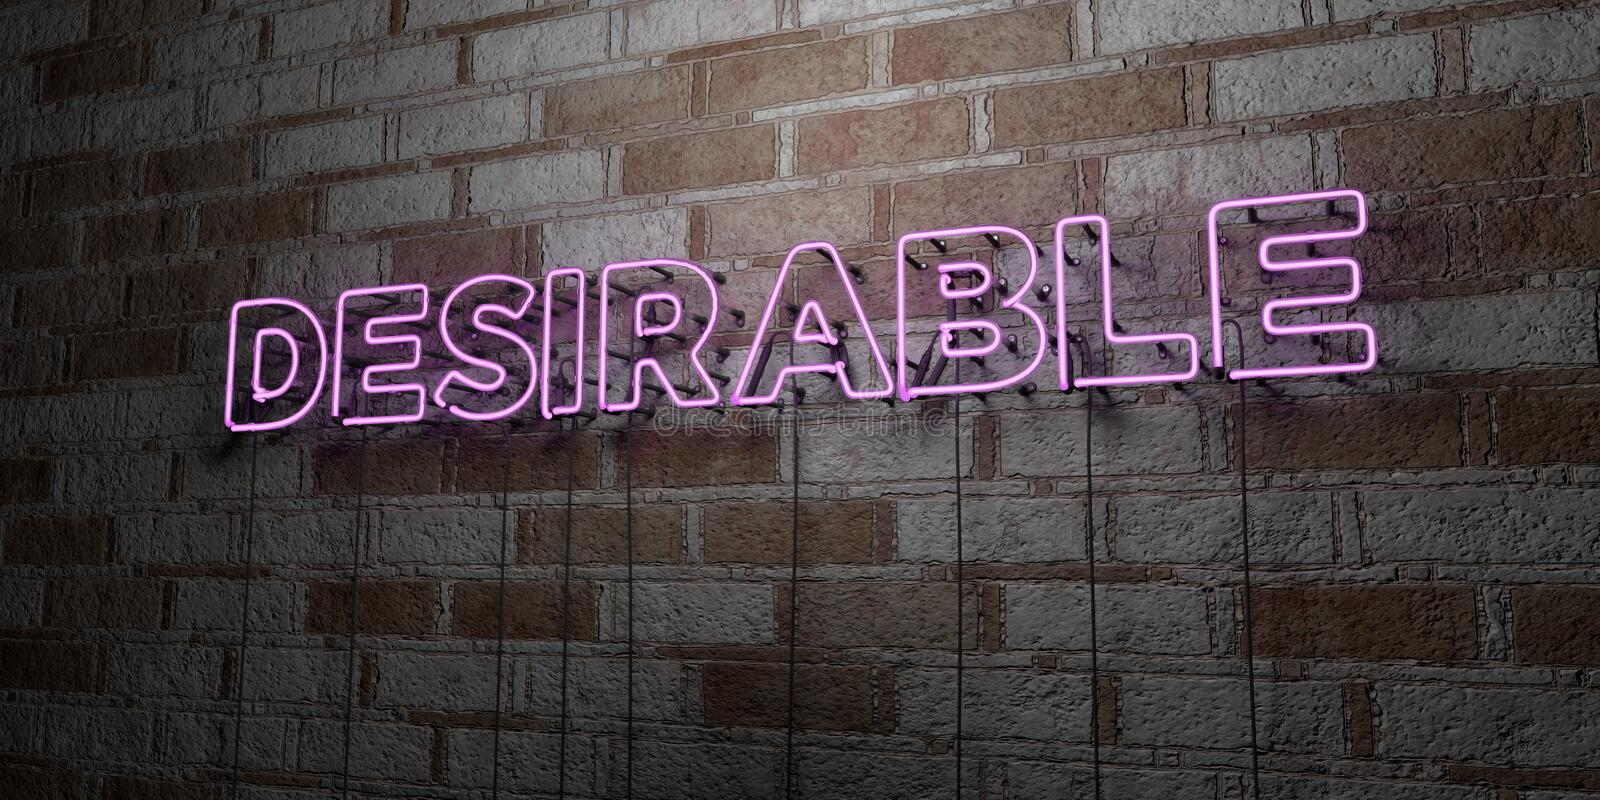 DESIRABLE - Glowing Neon Sign on stonework wall - 3D rendered royalty free stock illustration. Can be used for online banner ads and direct mailers royalty free illustration